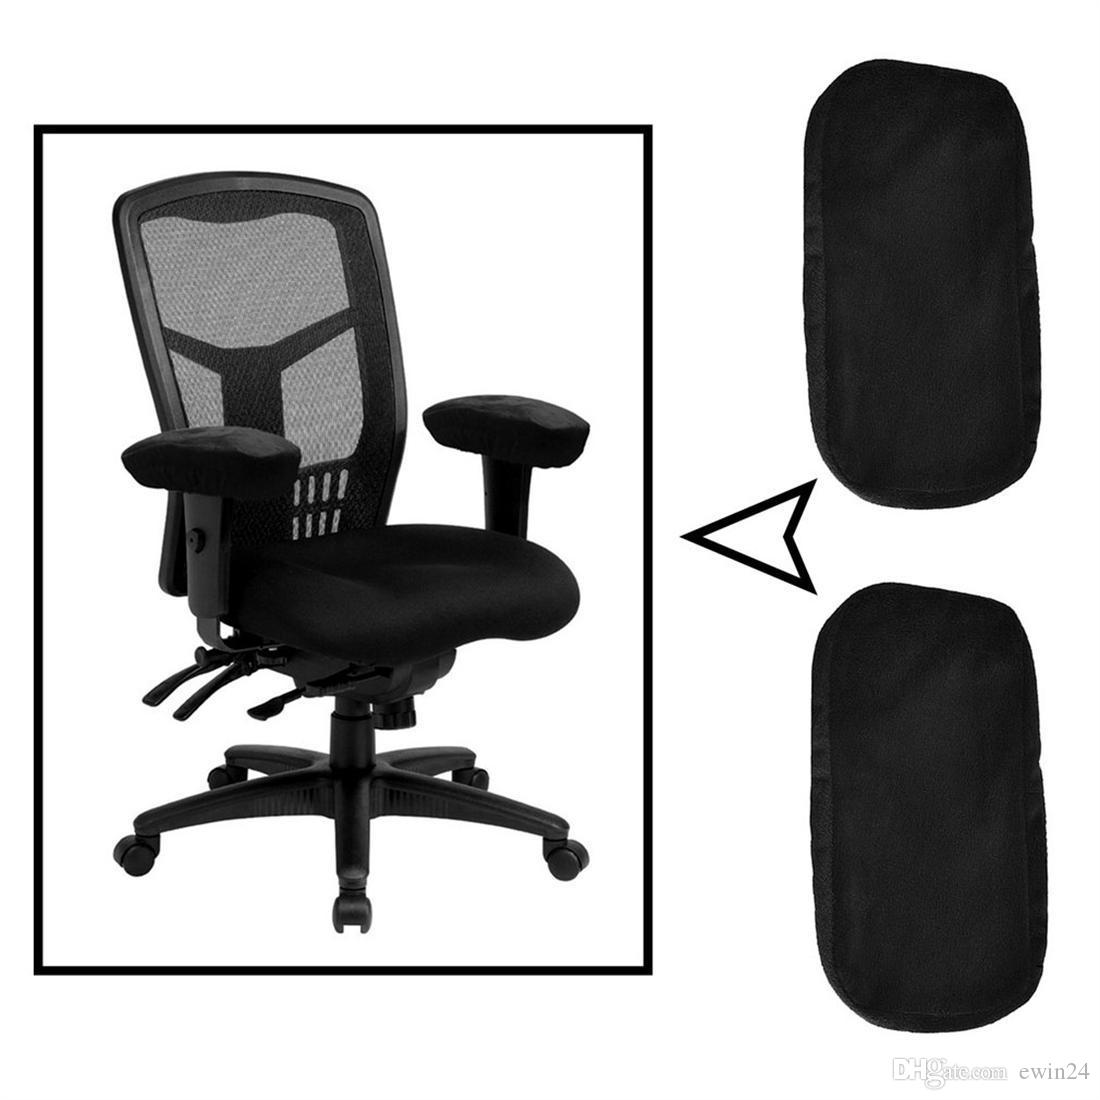 Picture of: 2020 Ergonomic Memory Foam Office Chair Armrest Pads Comfy Gaming Chair Arm Rest Covers For Elbows And Forearms Pressure Reliefset Of 2 From Ewin24 9 03 Dhgate Com